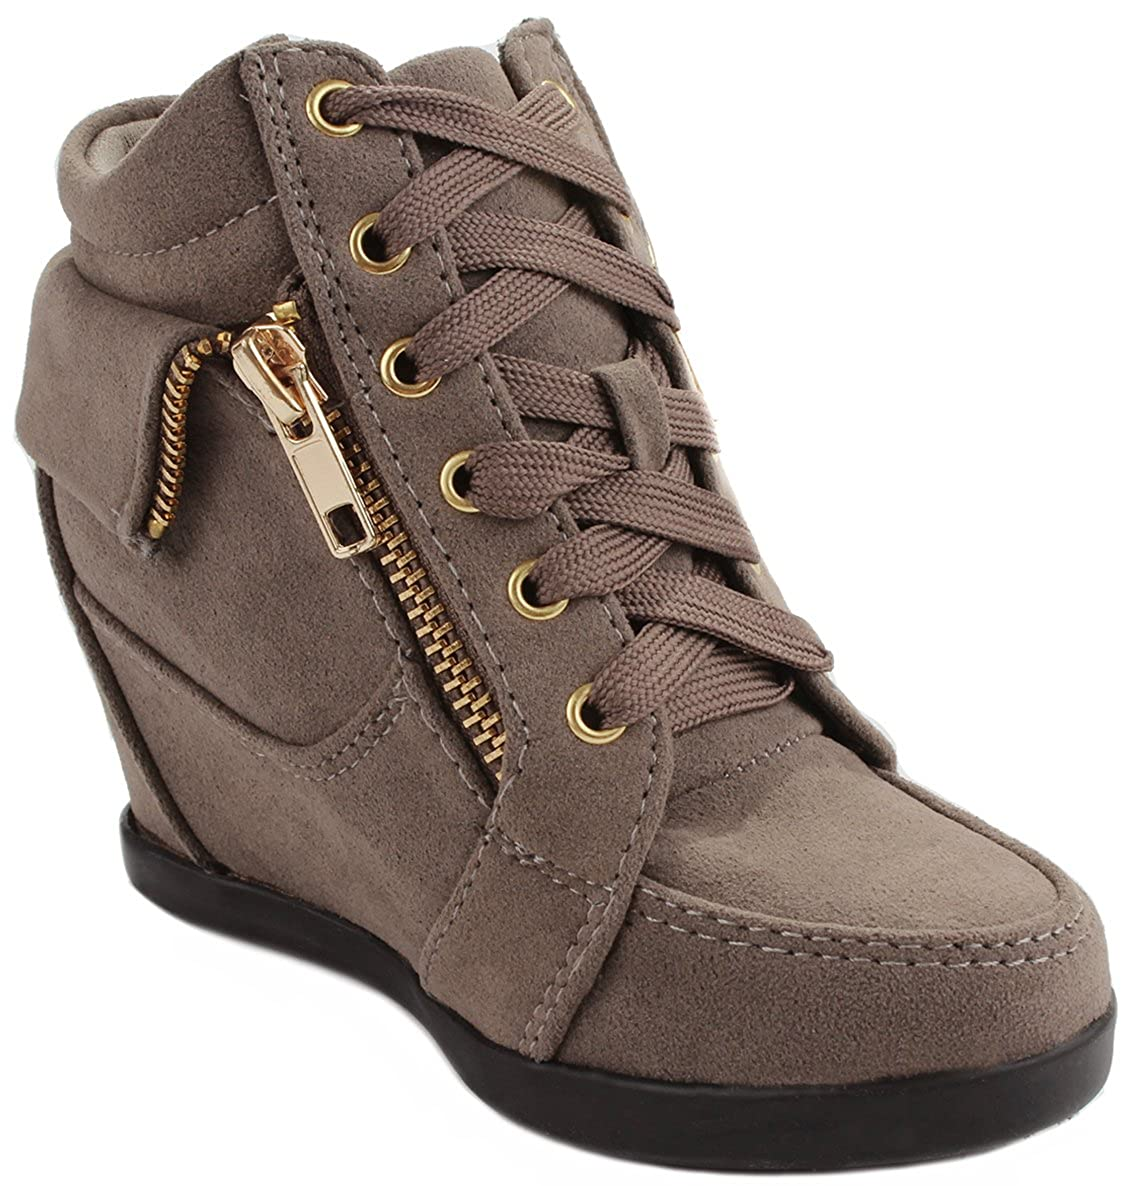 JJF Shoes Peter Gladys24 Kids Taupe Fashion Leatherette Suede Lace-up High Top Wedge Sneaker Bootie-12